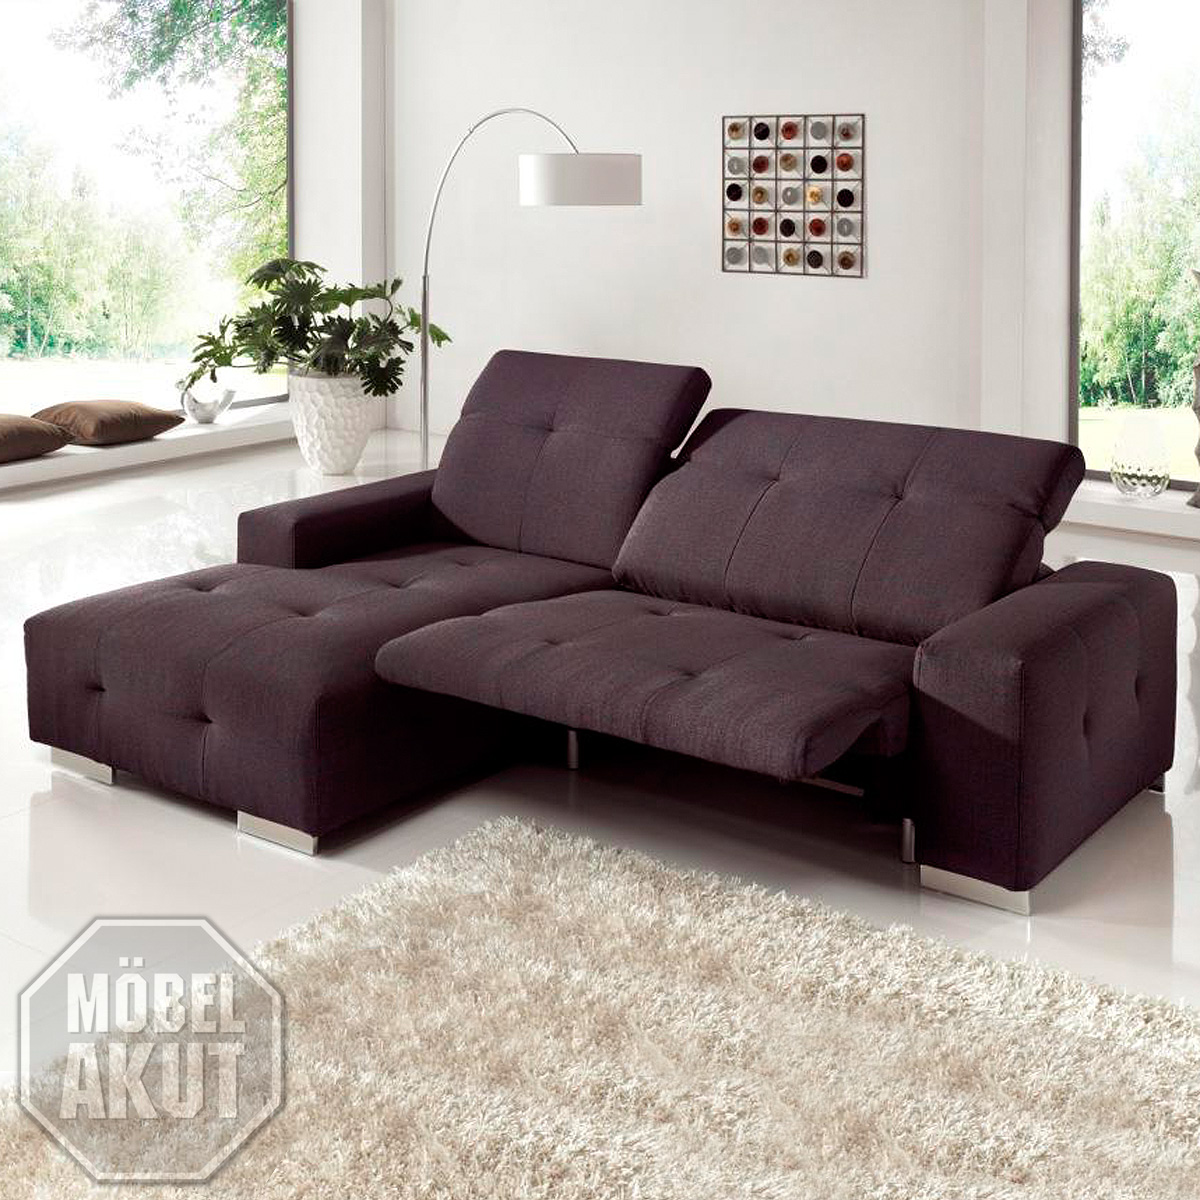 ecksofa francisco sofa lila mit elektrischer relaxfunktion 257 cm ebay. Black Bedroom Furniture Sets. Home Design Ideas